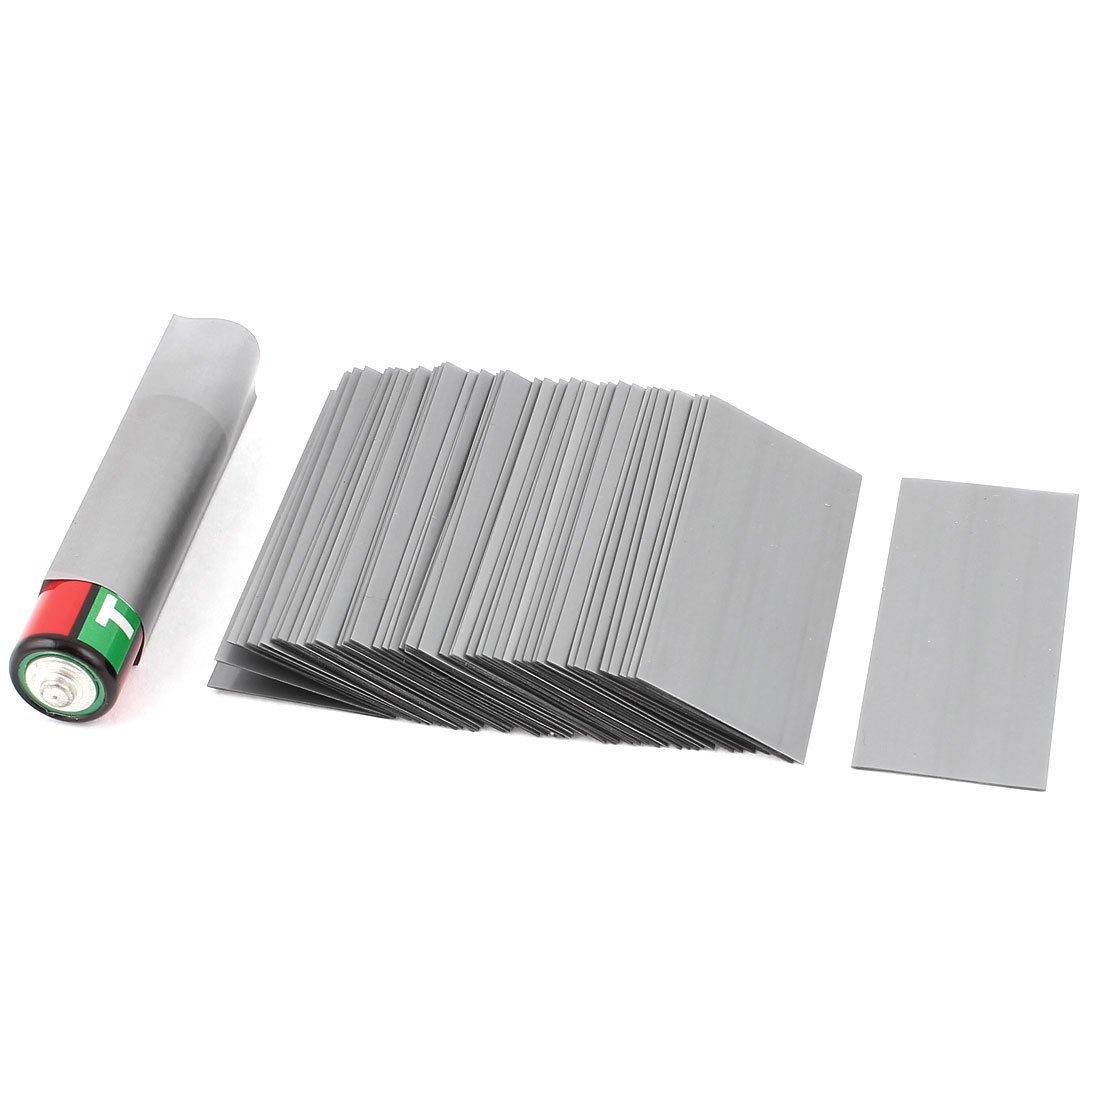 50pcs 23mm Flat 14.5mm Dia PVC Heat Shrink Tubing Gray for 1 x 1.5V AA Battery